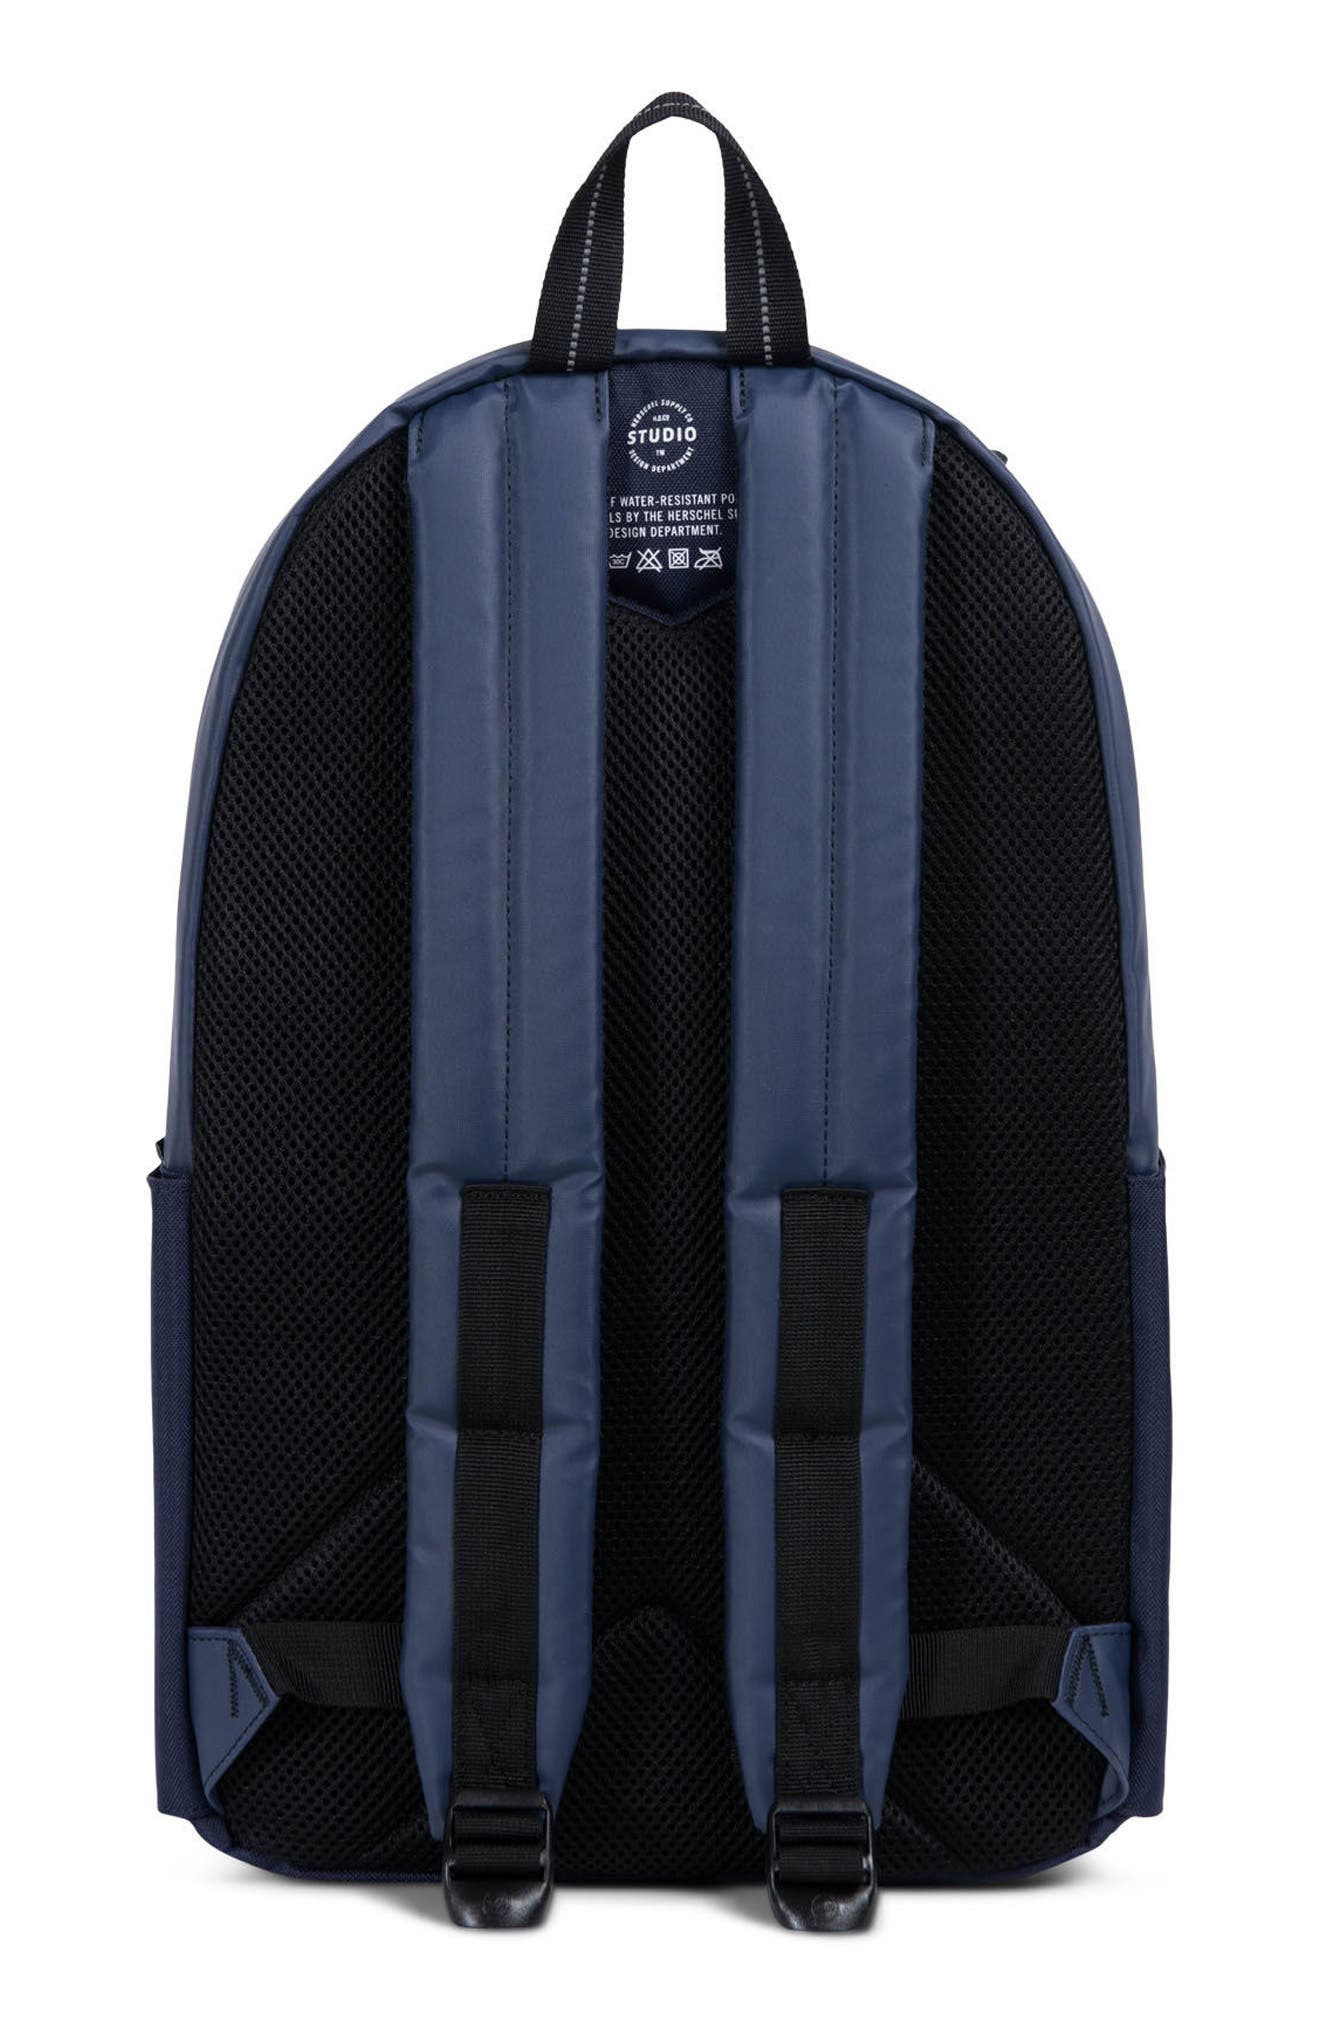 Parker Studio Collection Backpack,                             Alternate thumbnail 2, color,                             Peacoat/ Black